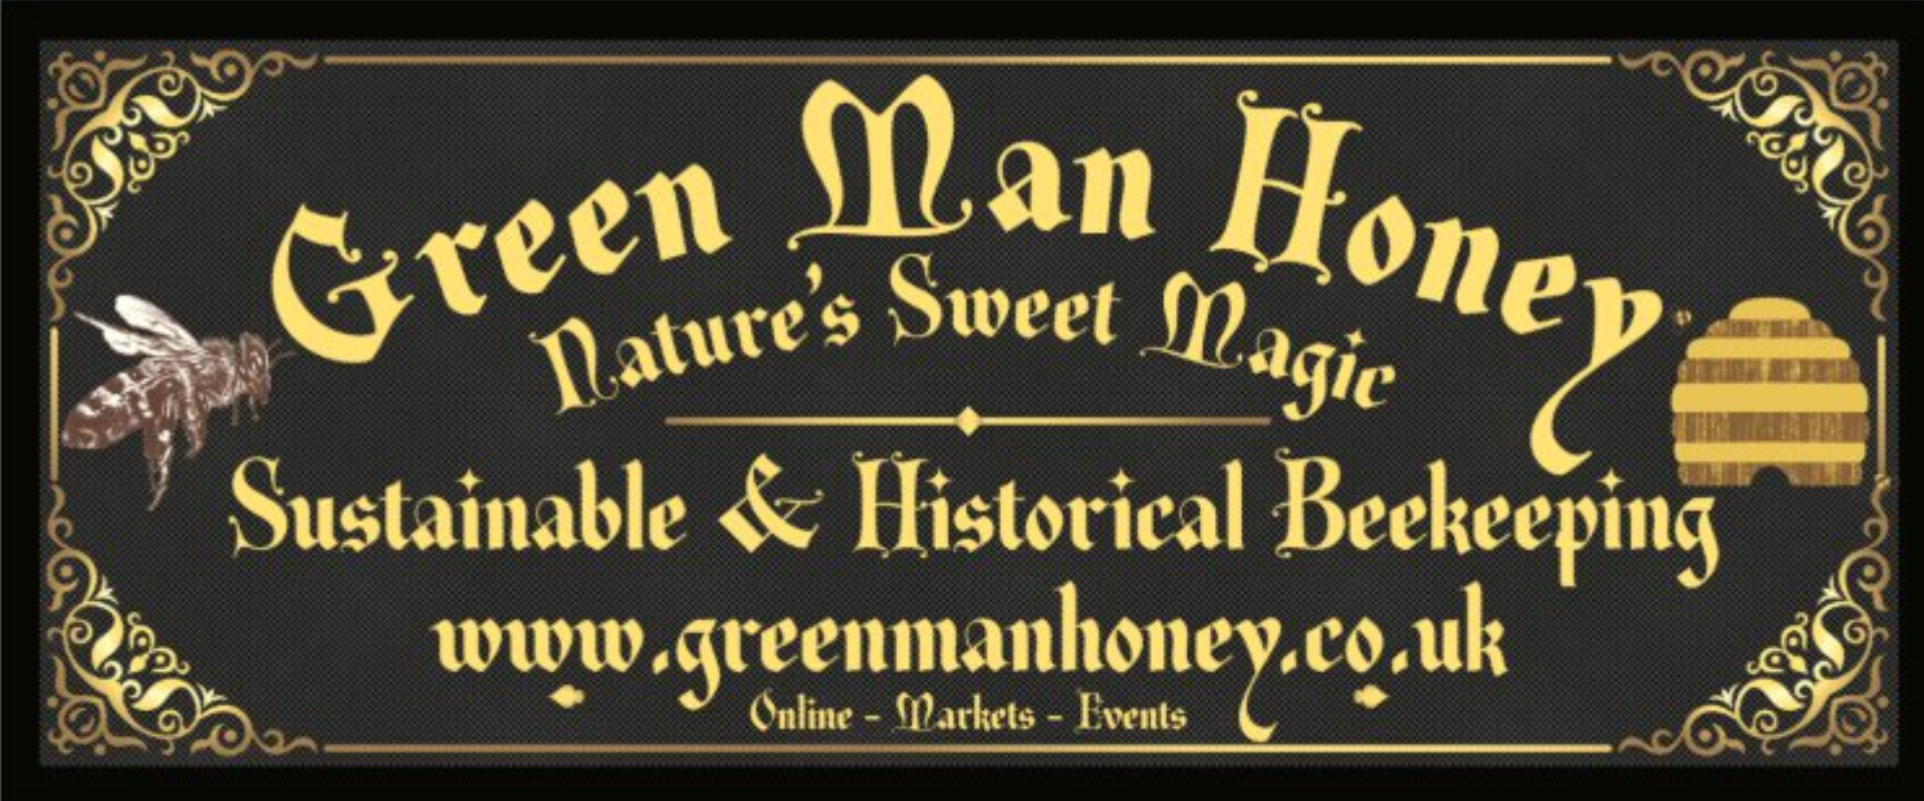 Green Man Honey